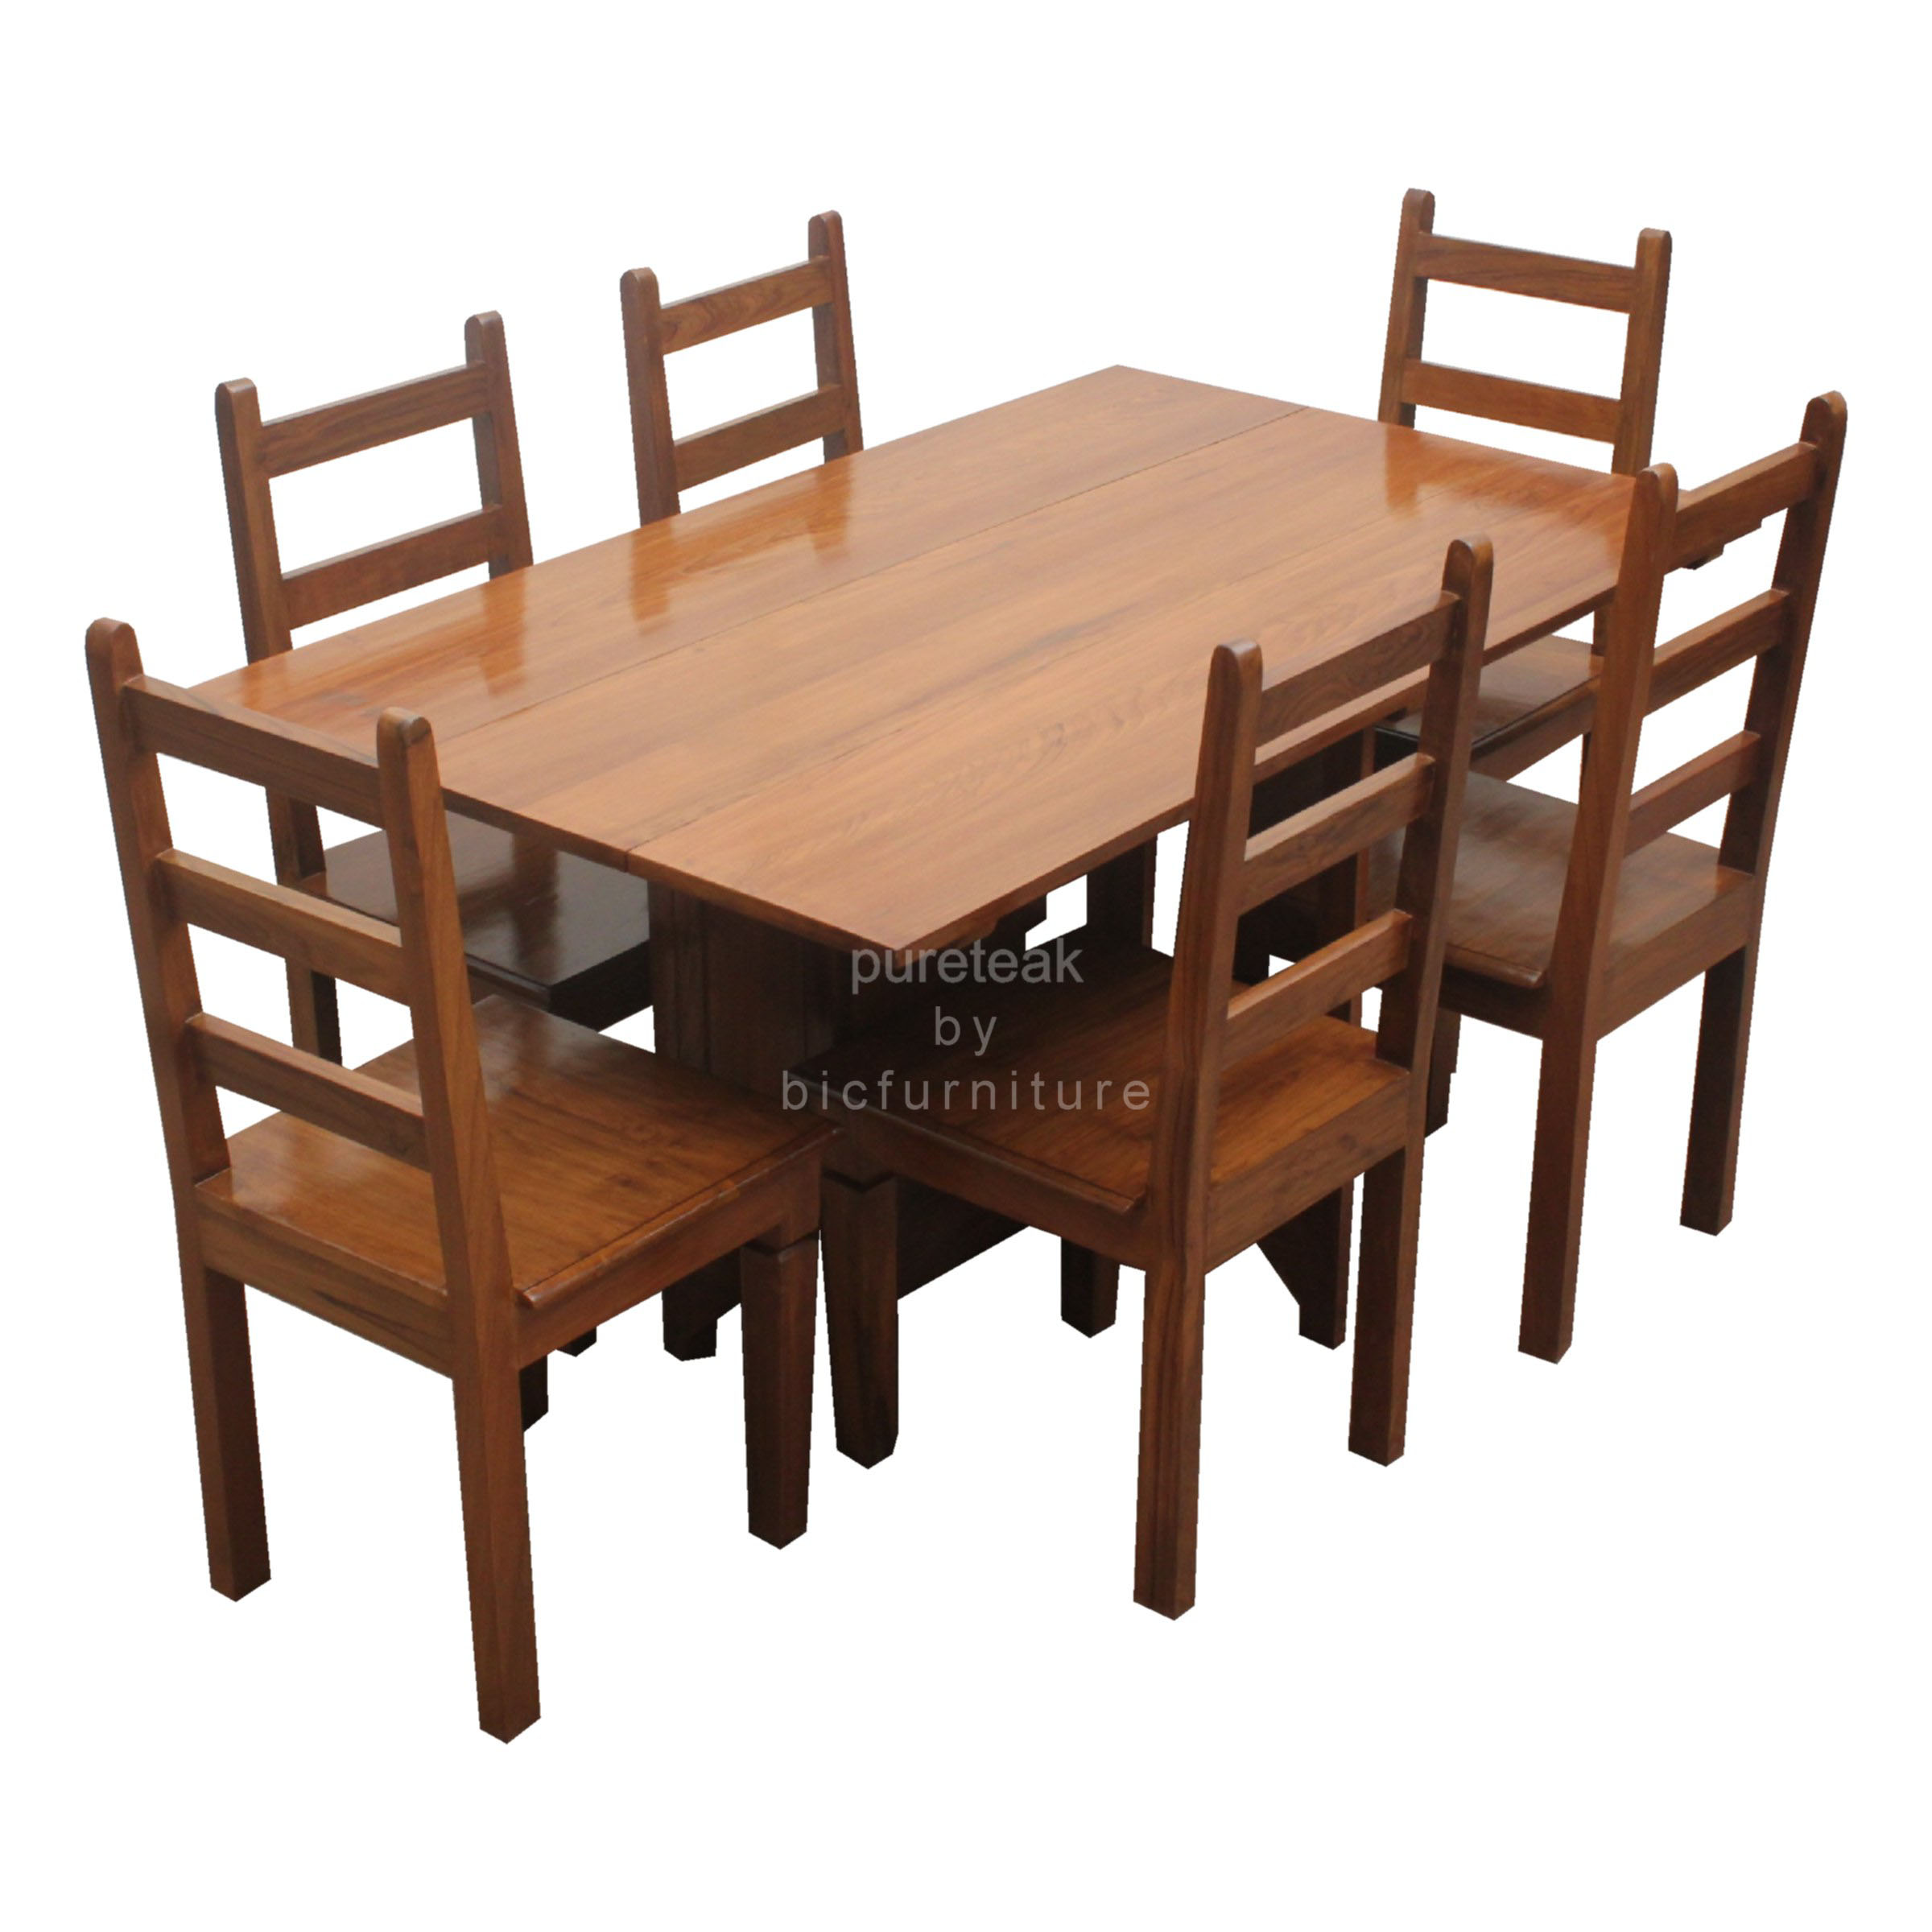 Six_seater_dinning _chair_u0026_table. Six_seater_dinning_table_in_solid_wood.  Solid_wood_foulding_dinning_table. Teak_wood_6_seater_dinning_table